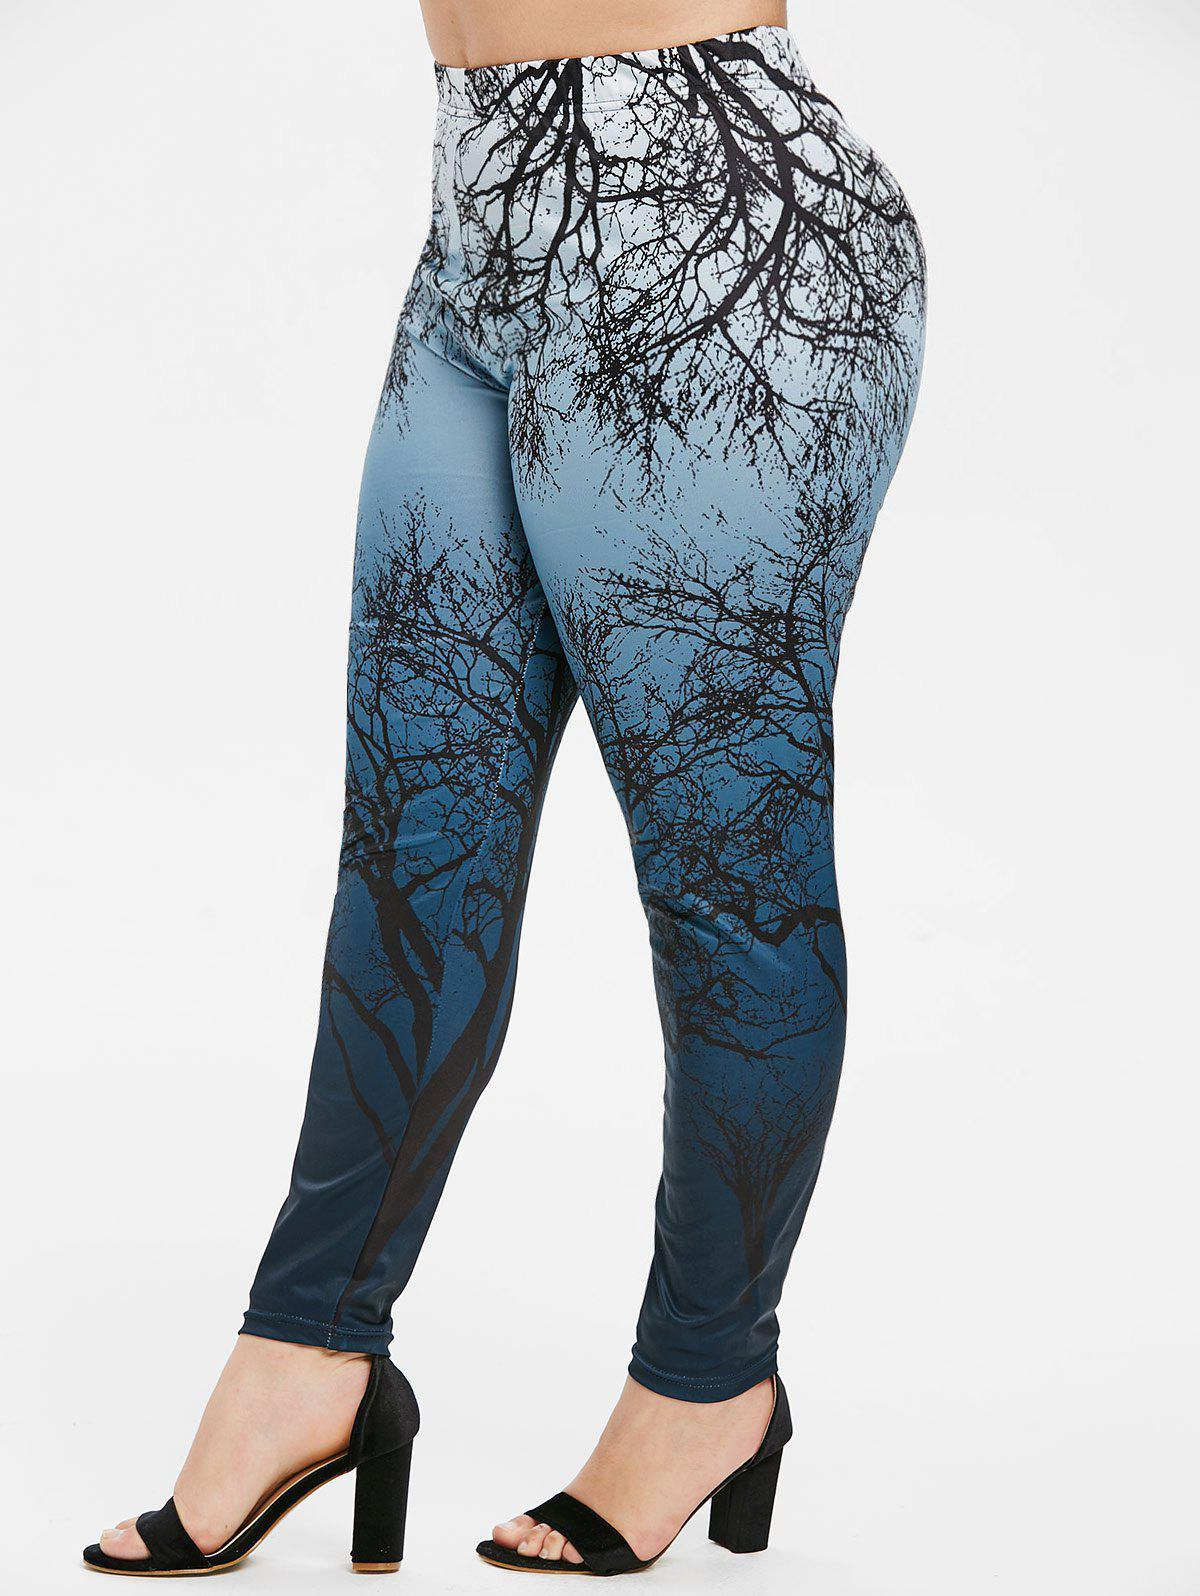 Discount Plus Size Ombre Tree Print Gothic Halloween Leggings